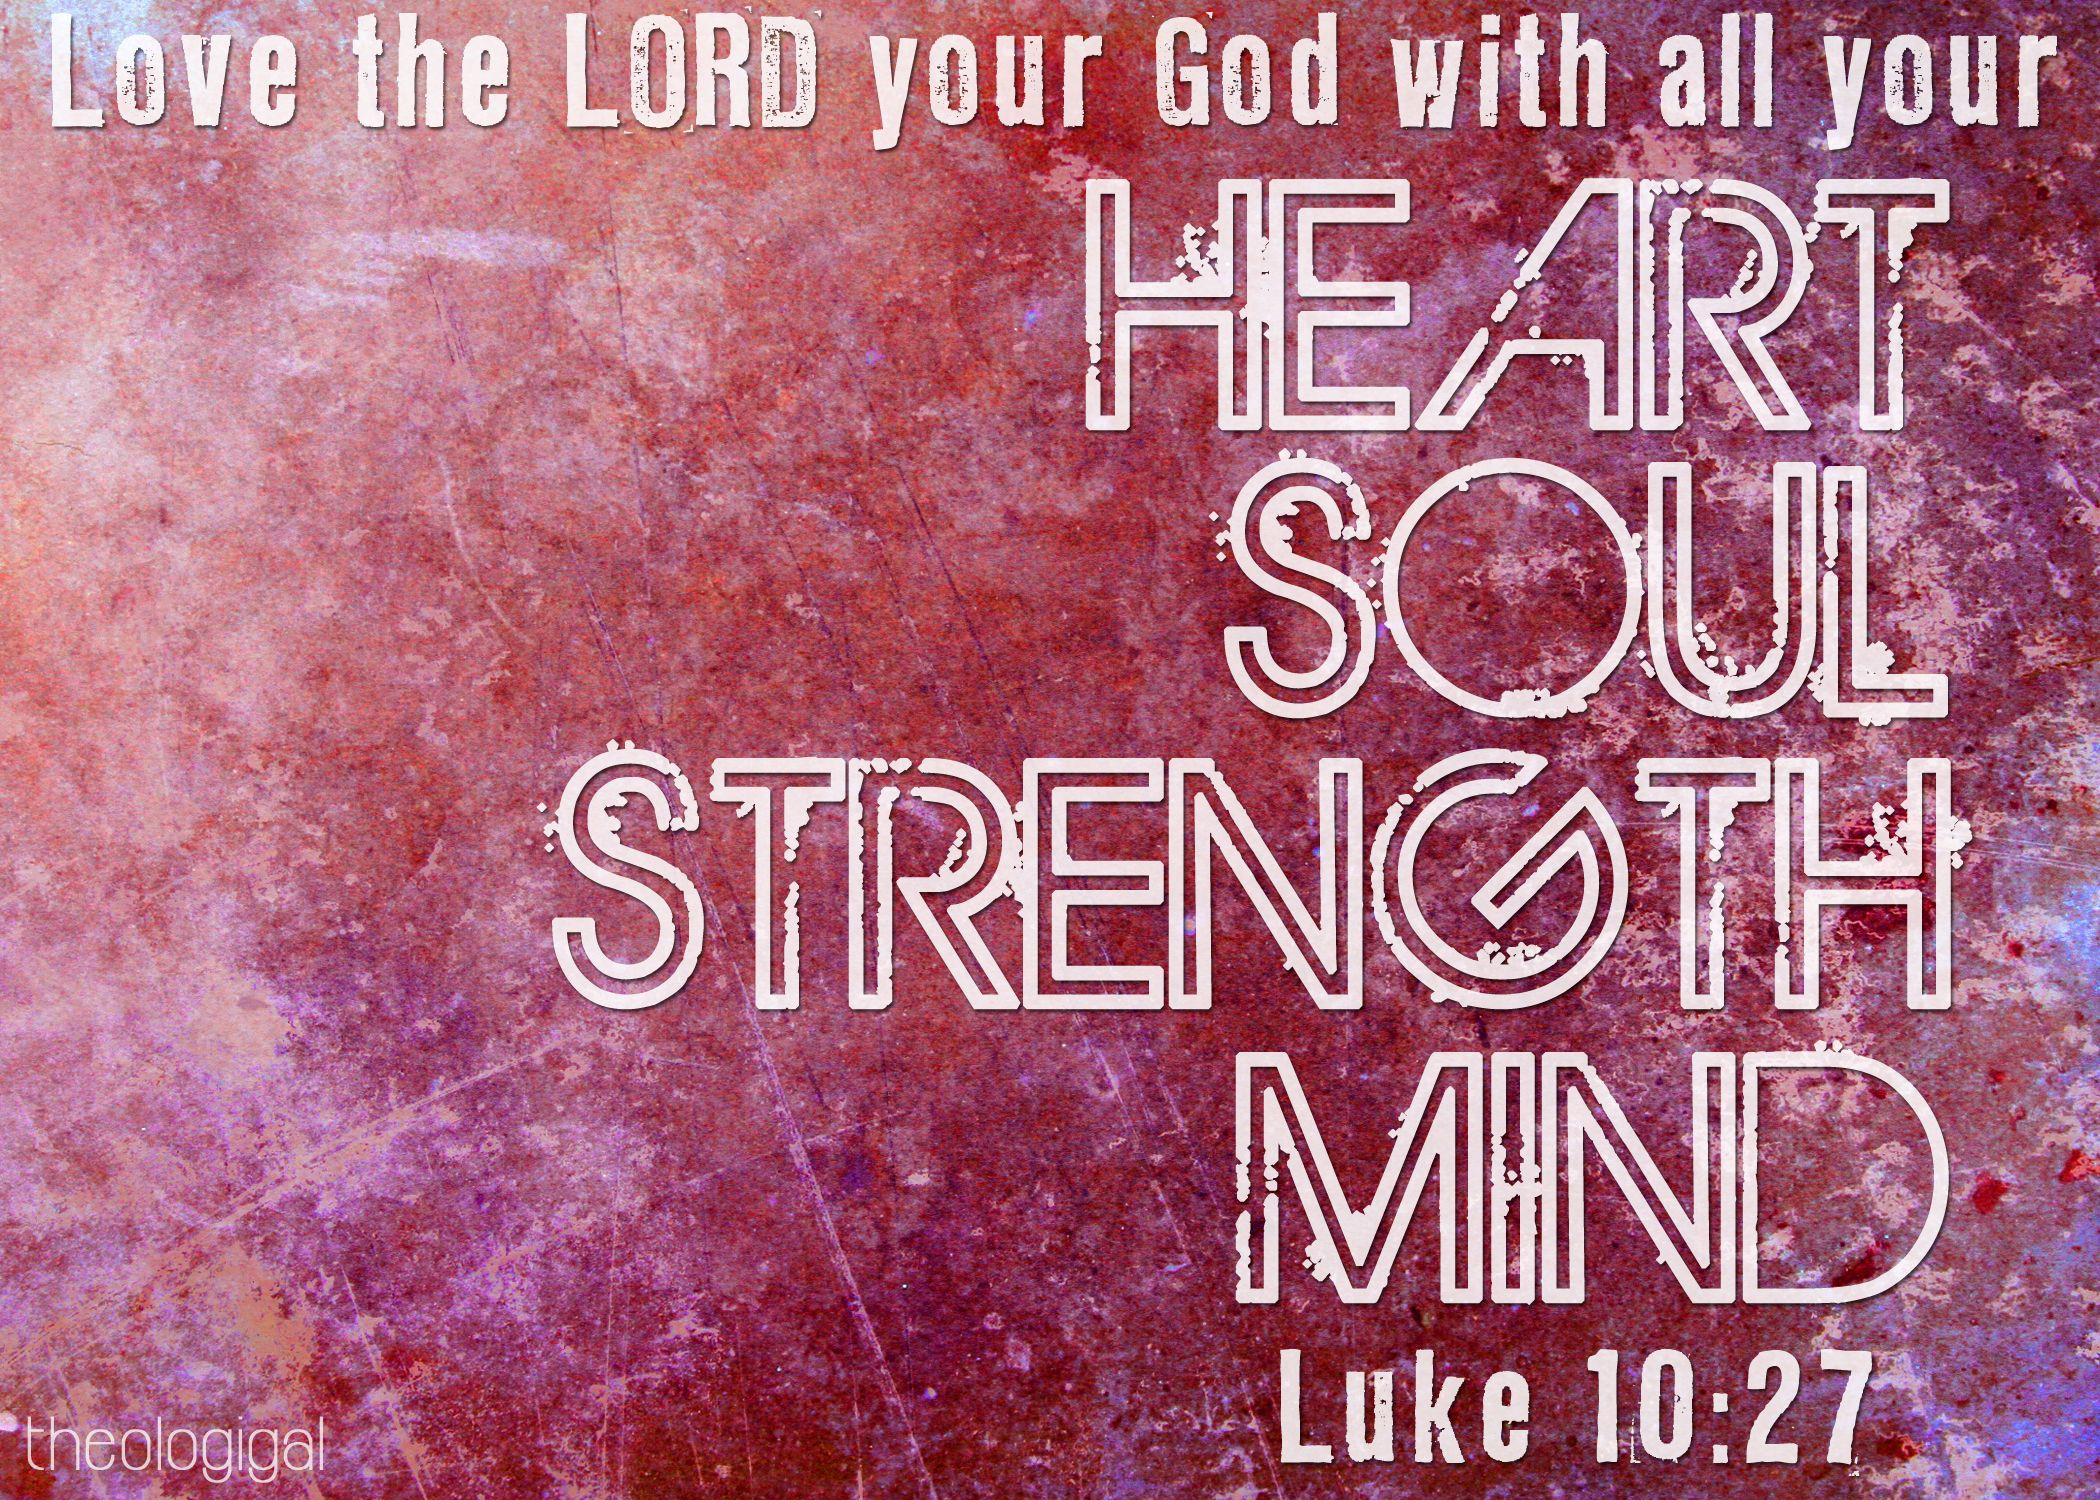 Love the Lord your god with all you Heart Soul Strength Mind Luke 10